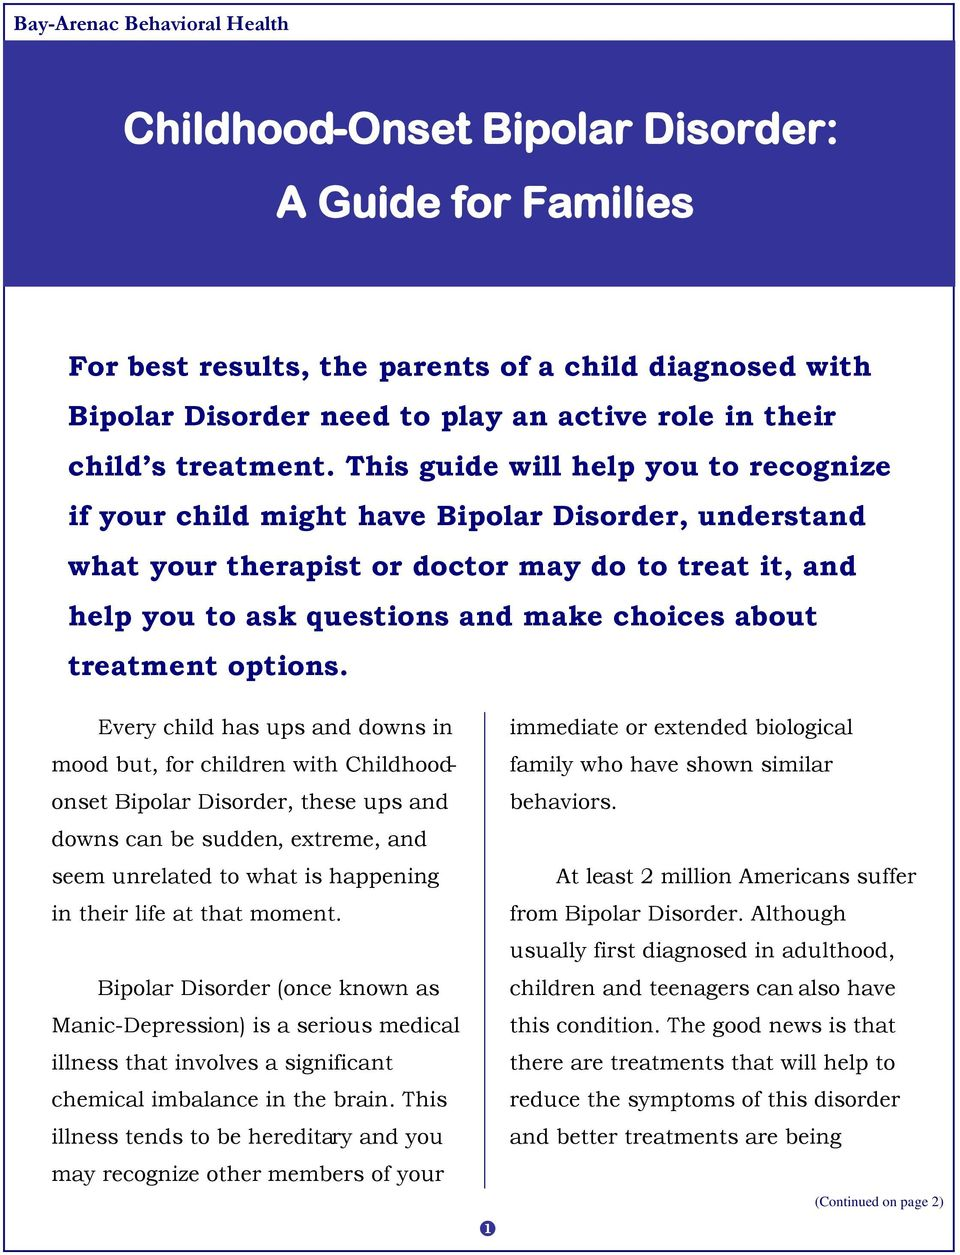 This guide will help you to recognize if your child might have Bipolar Disorder, understand what your therapist or doctor may do to treat it, and help you to ask questions and make choices about